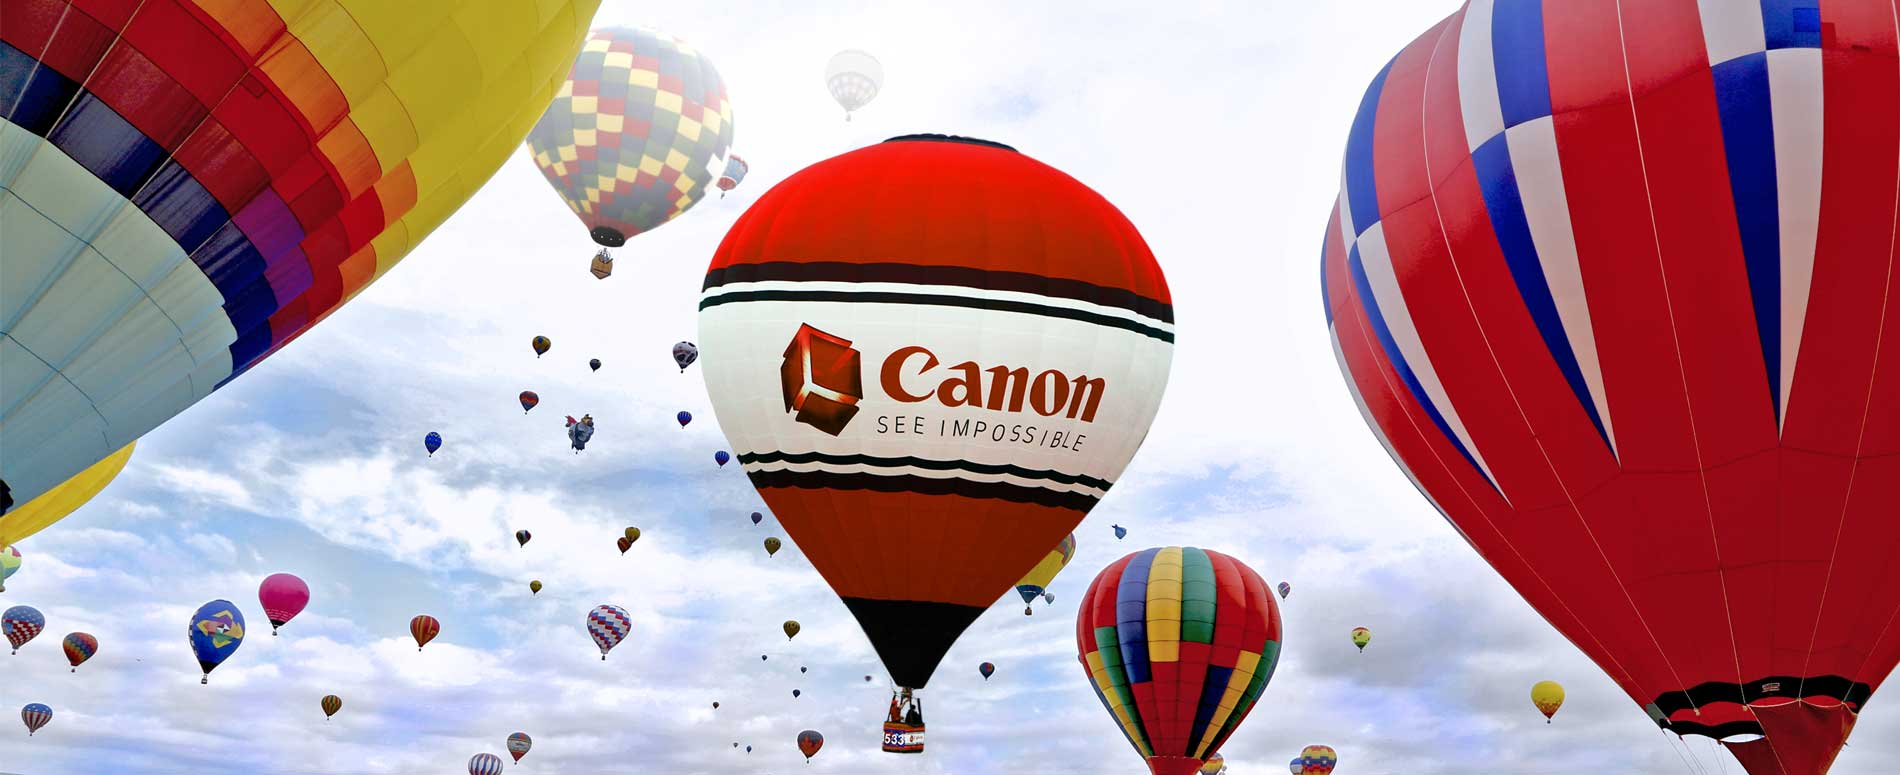 Albuquerque International Balloon Fiesta 2015 -Canon See Impossible balloon